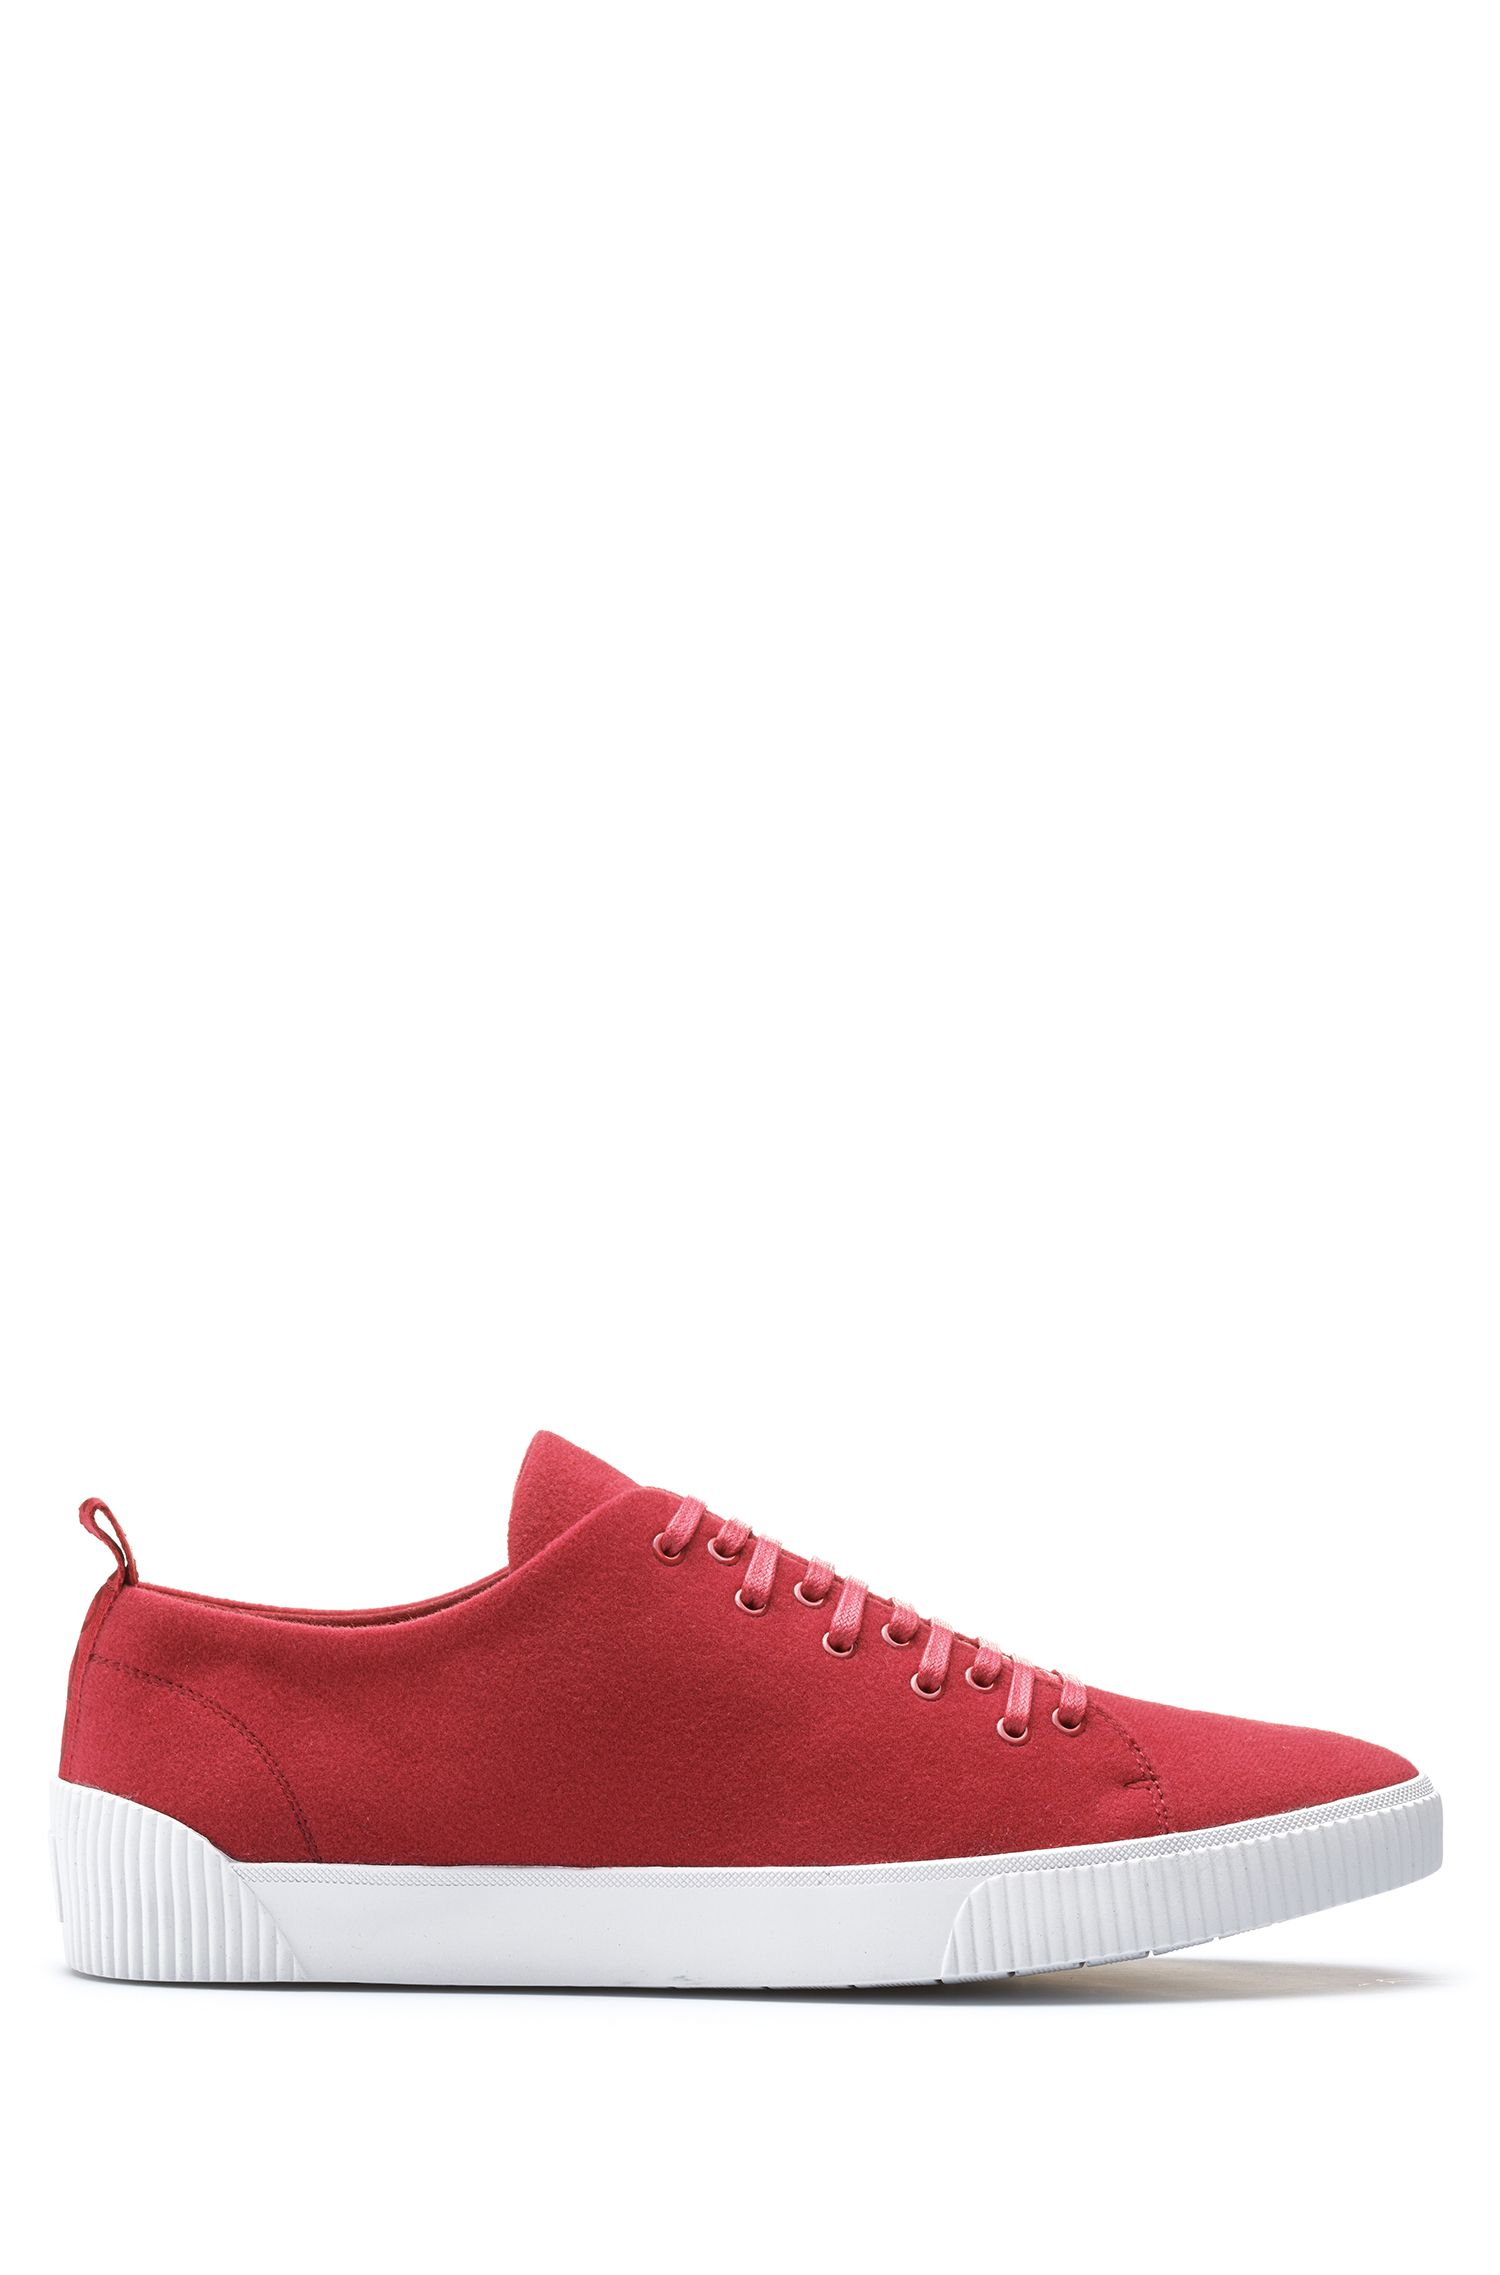 Tennis-inspired sneakers with removable patch detailing, Red